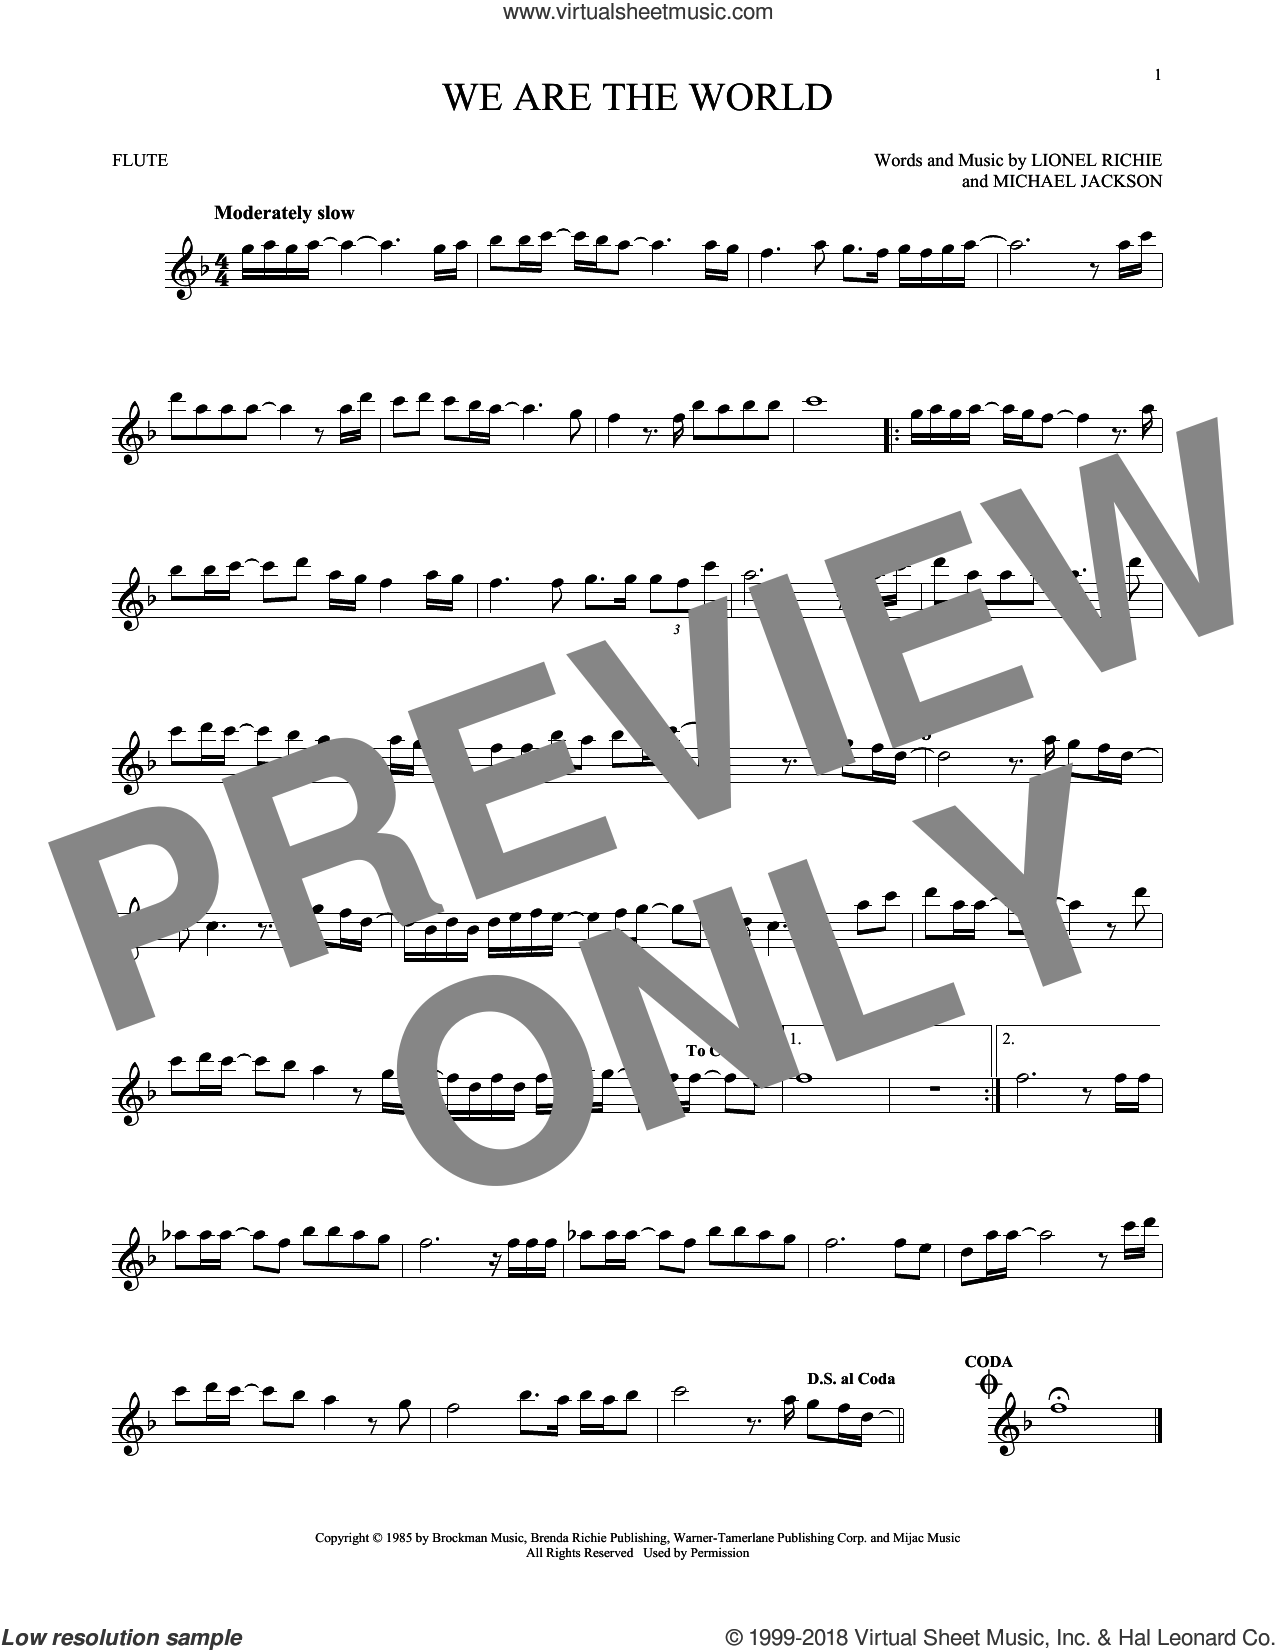 We Are The World sheet music for flute solo by Michael Jackson, USA For Africa, Lionel Richie and Lionel Richie & Michael Jackson, intermediate skill level